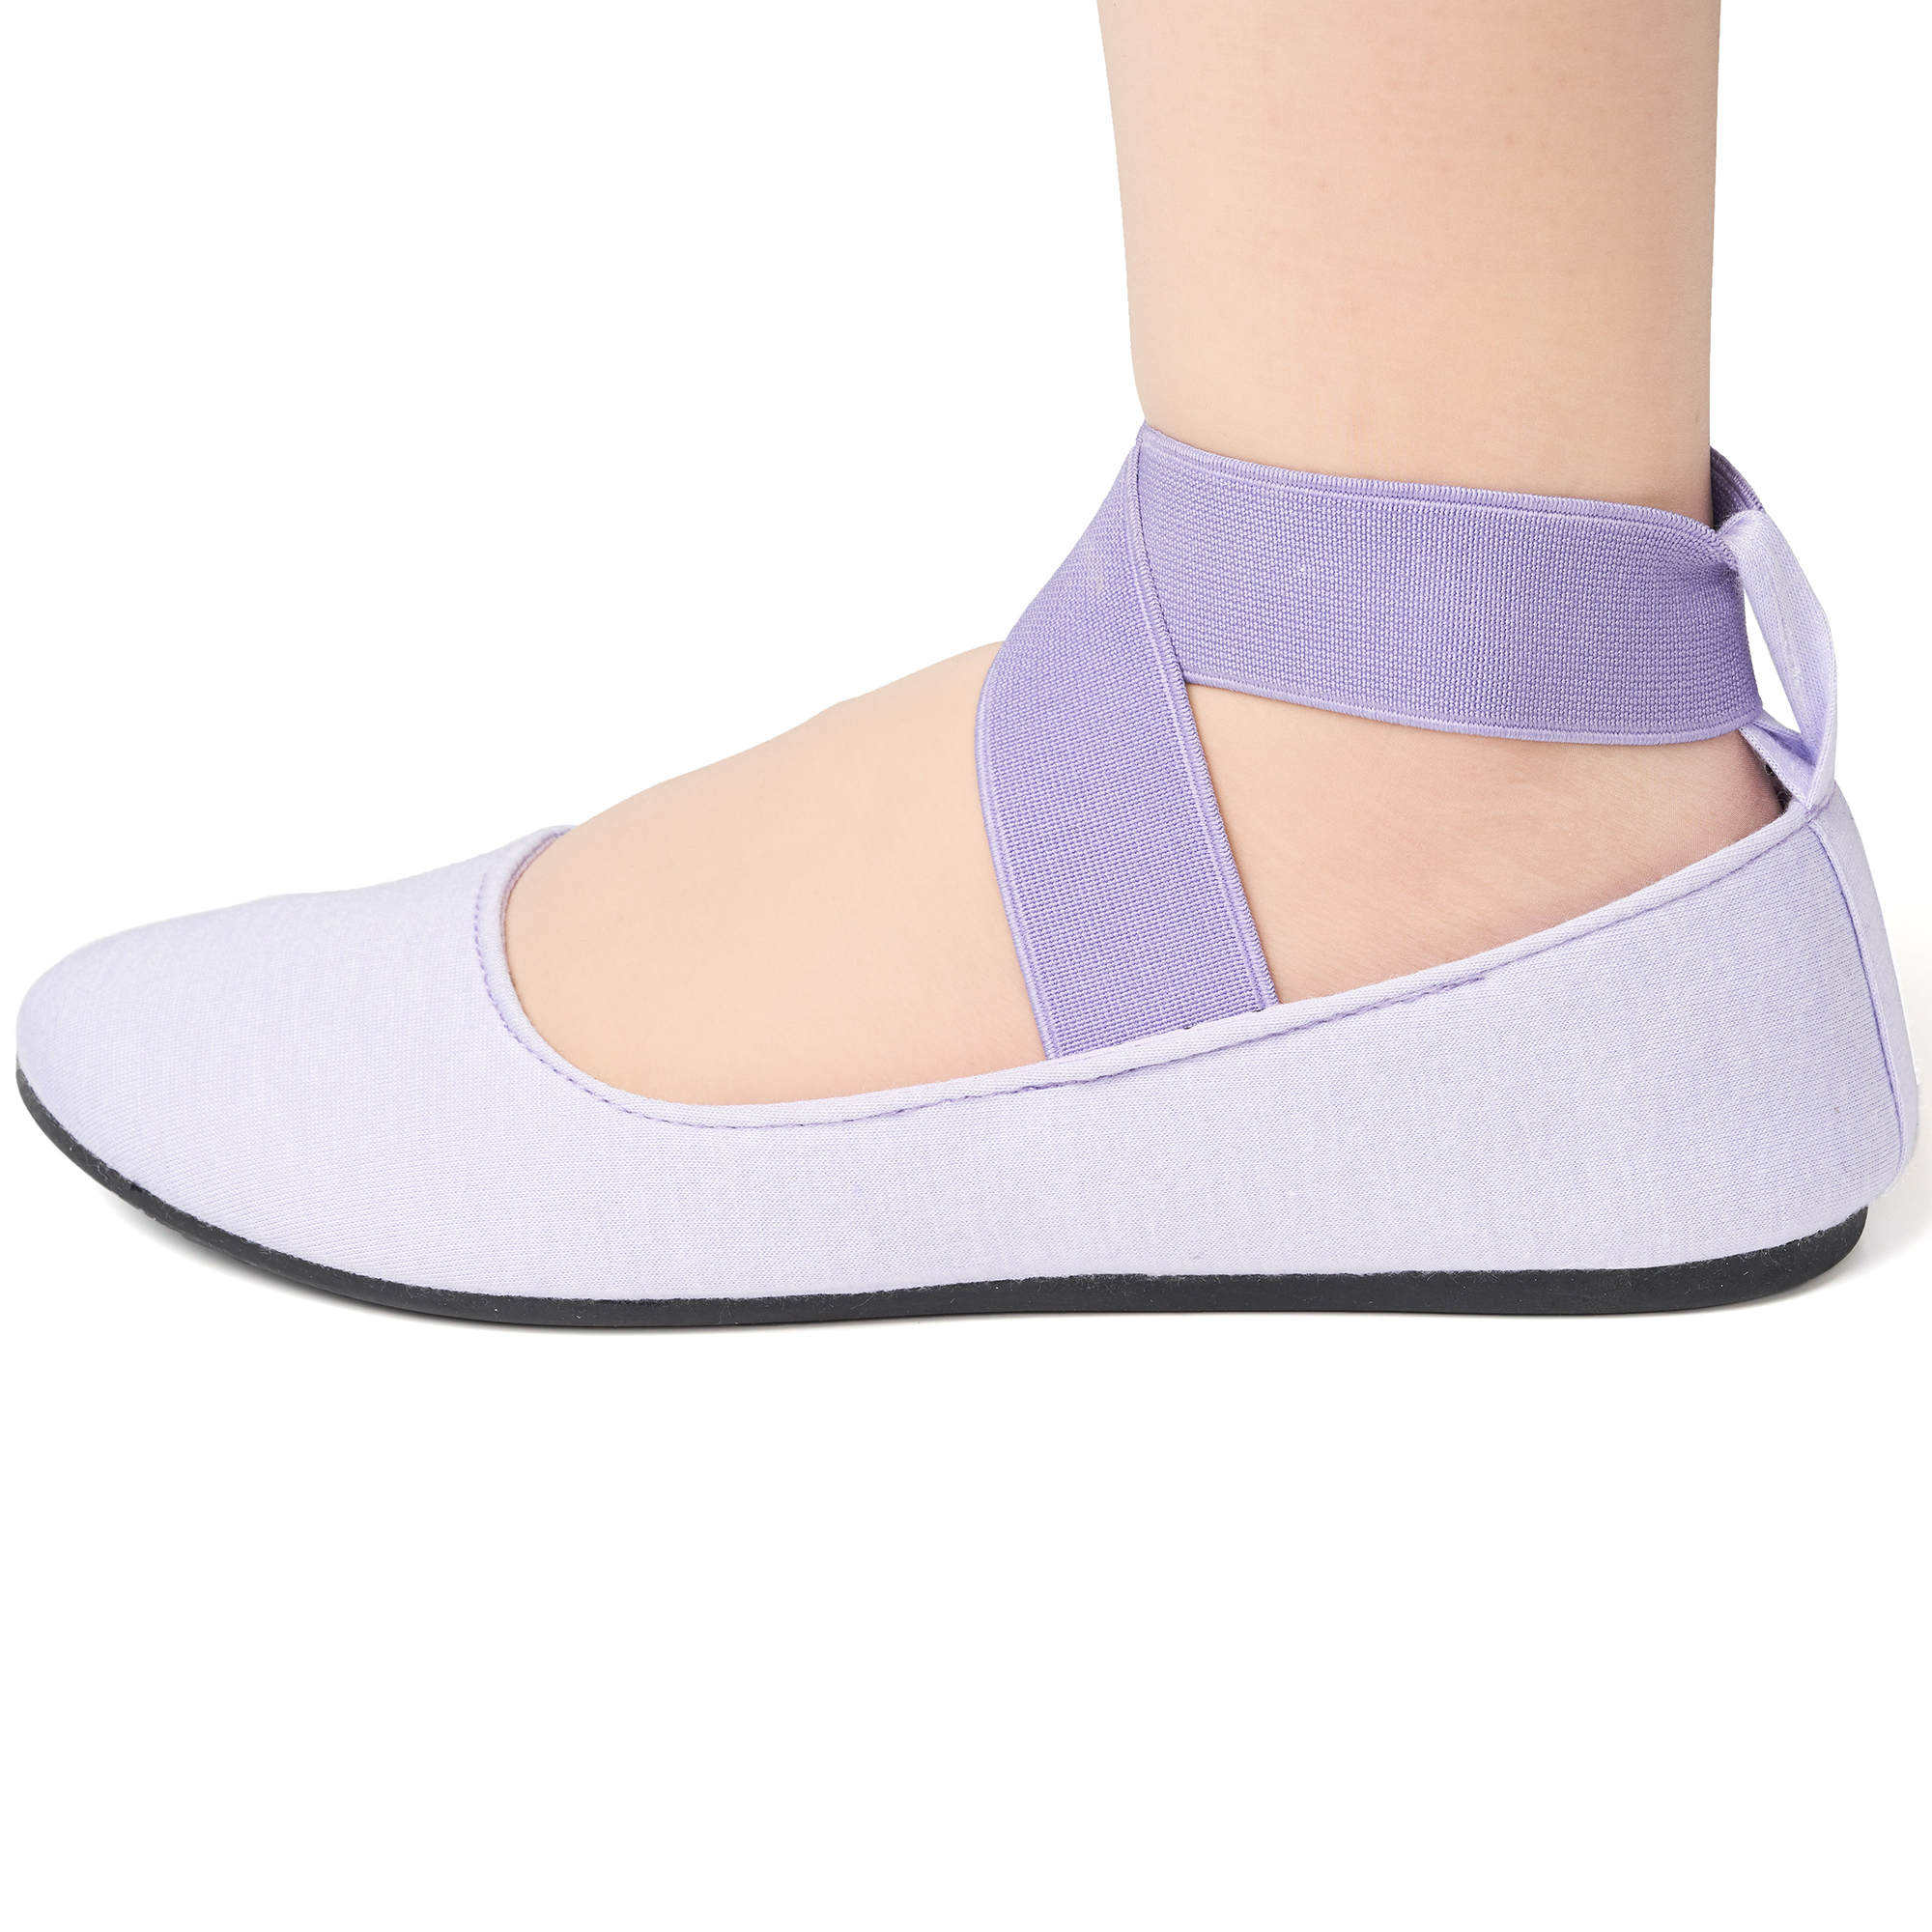 Alpine-Swiss-Peony-Womens-Ballet-Flats-Elastic-Ankle-Strap-Shoes-Slip-On-Loafers thumbnail 38